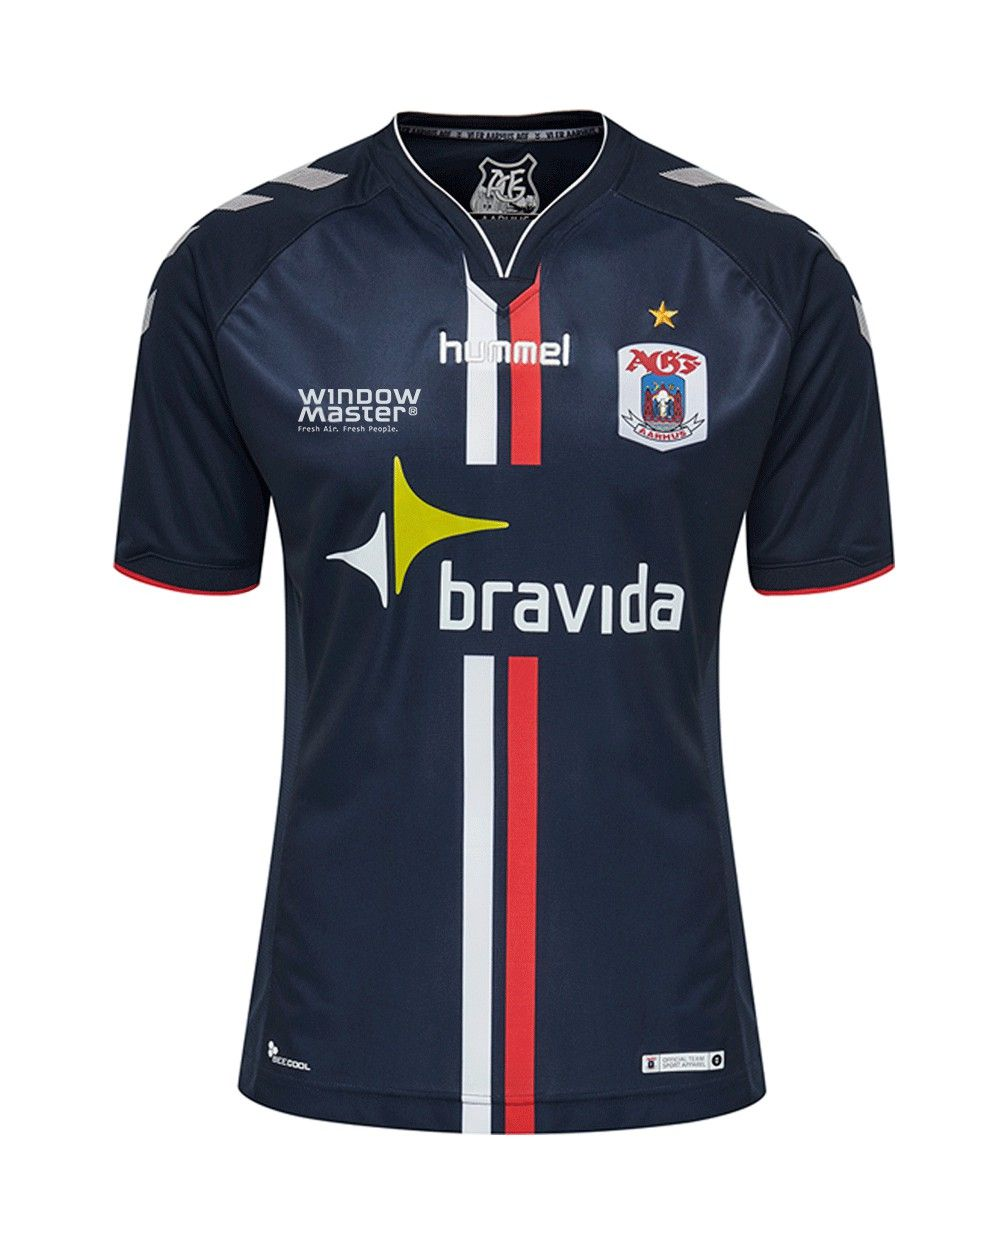 89b96de1cf0 Aarhus GF Hummel Away Kit 2018-19 | Football (soccer) | Soccer tips ...